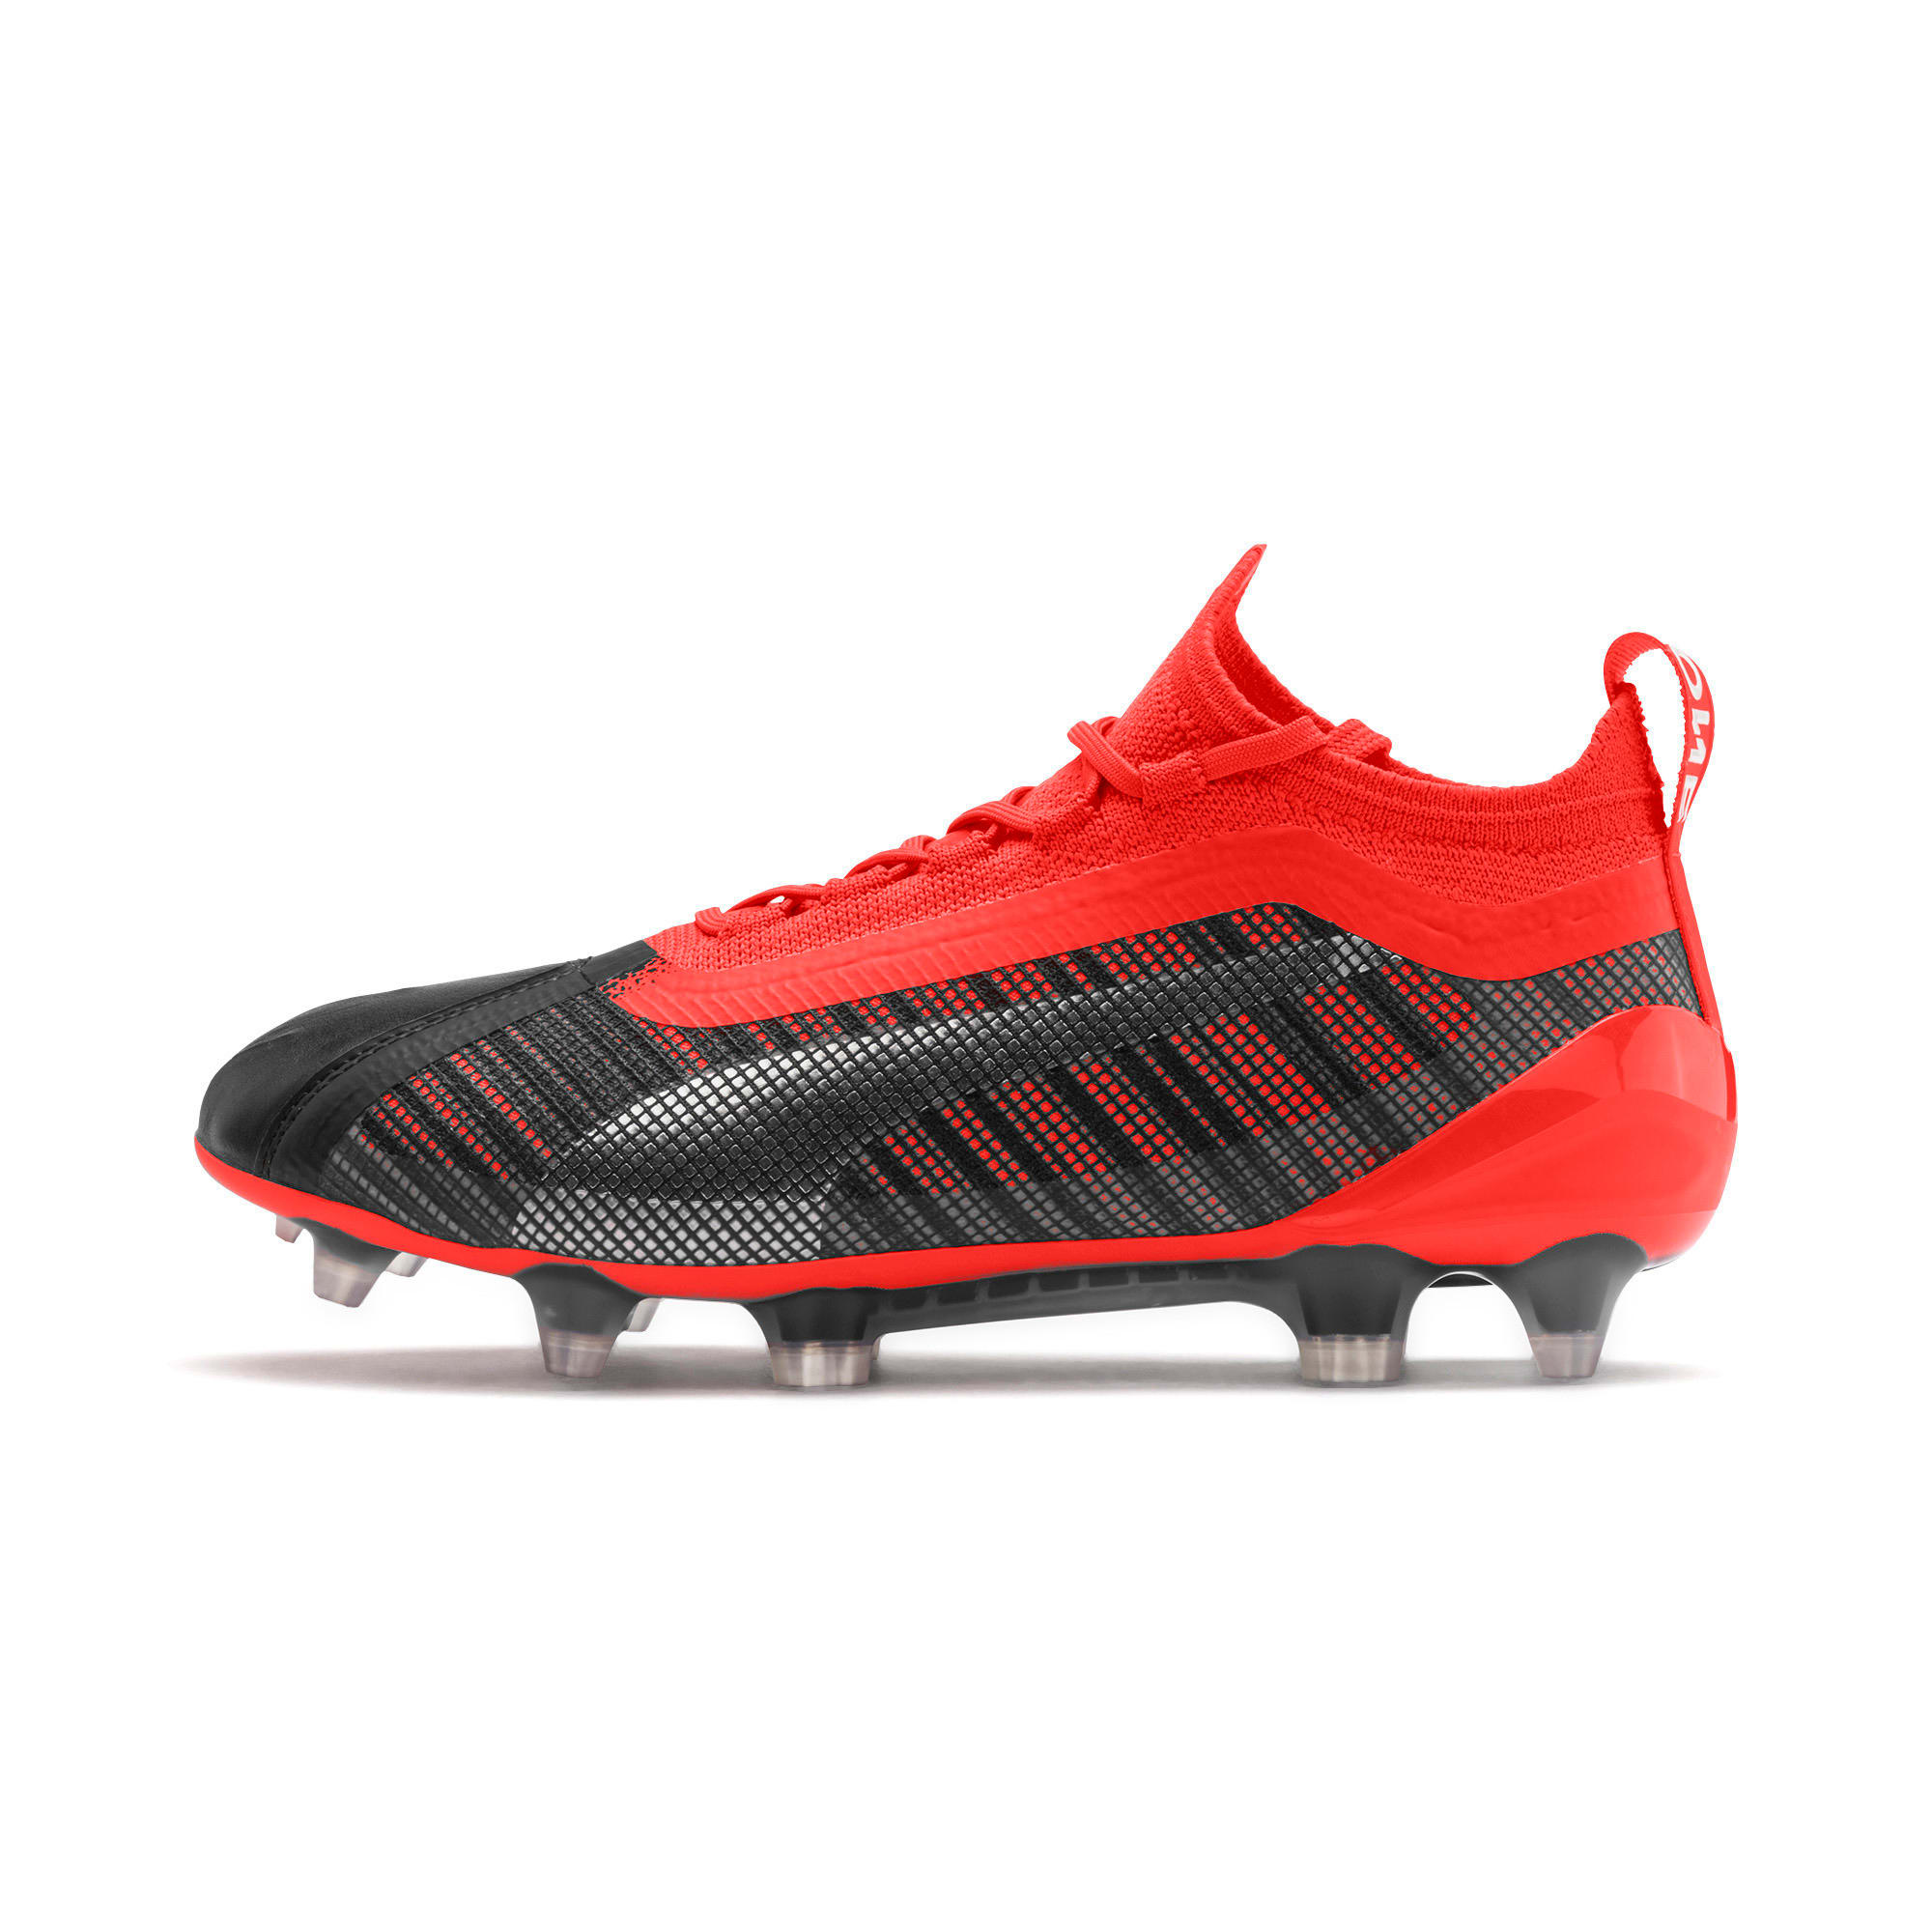 Thumbnail 1 of PUMA ONE 5.1 FG/AG Soccer Cleats JR, Black-Nrgy Red-Aged Silver, medium